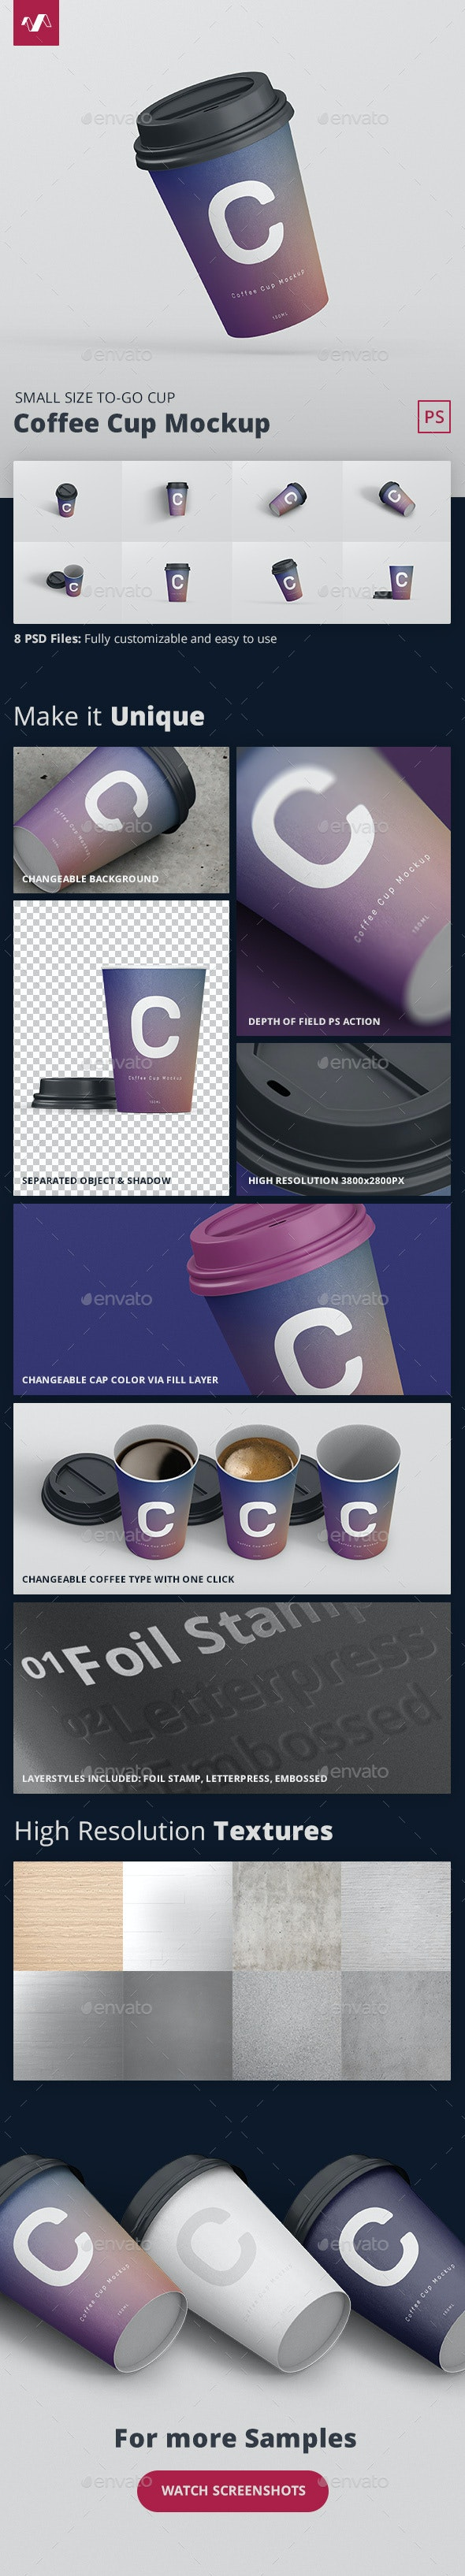 Coffee Cup Mockup Small Size - Food and Drink Packaging